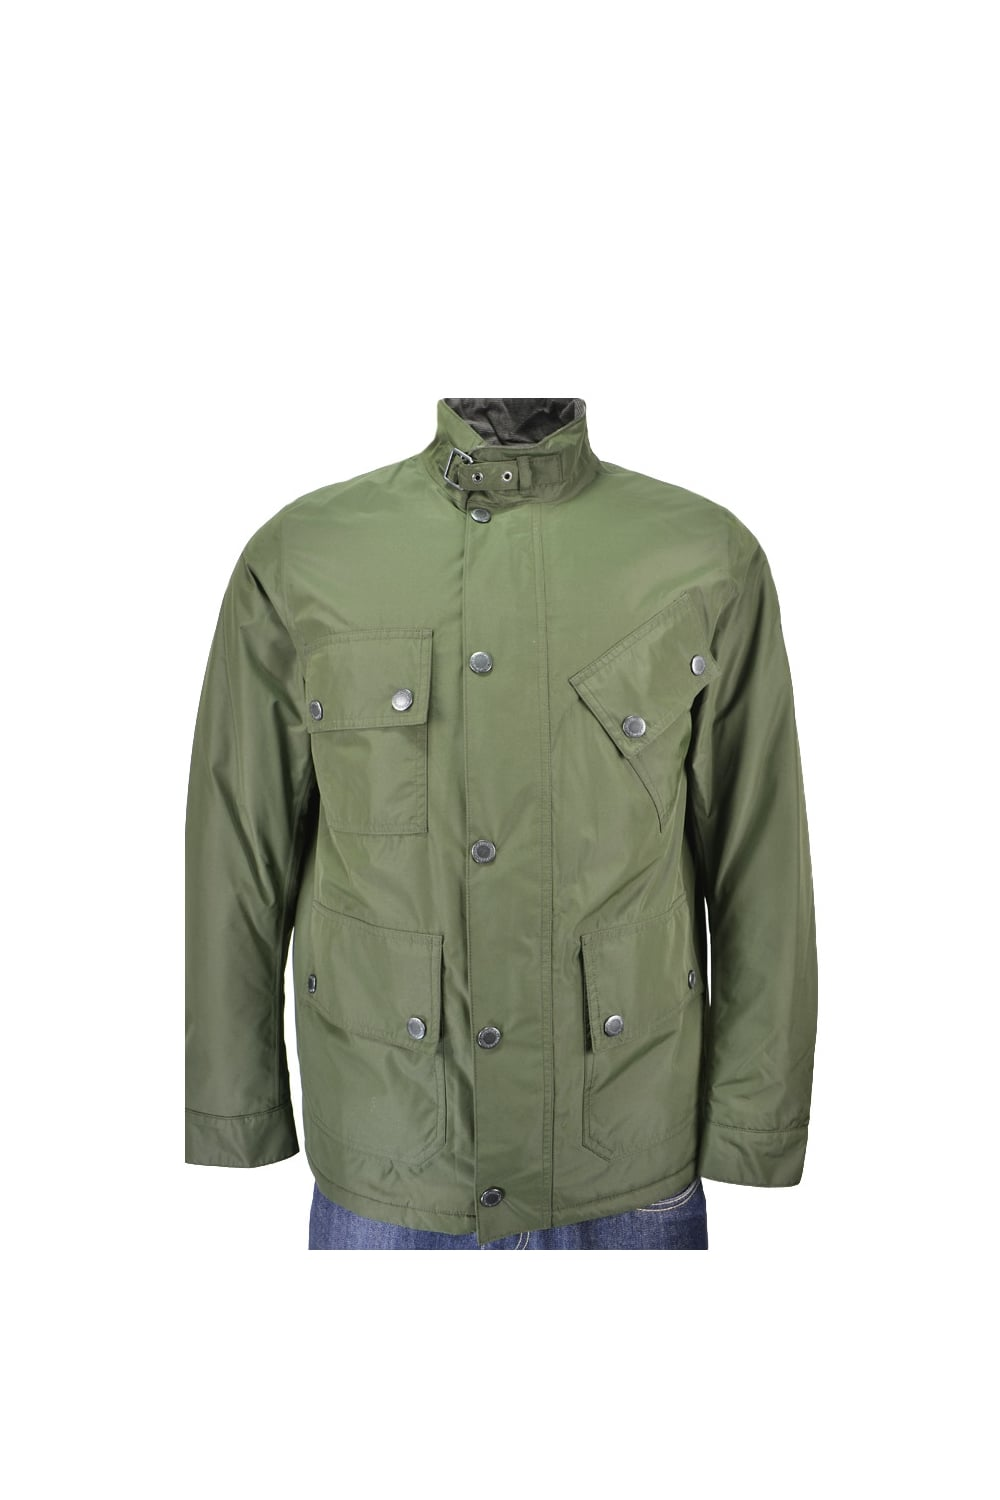 013e56de3 Barbour International Tyne Jacket Sage - Clothing from Michael ...